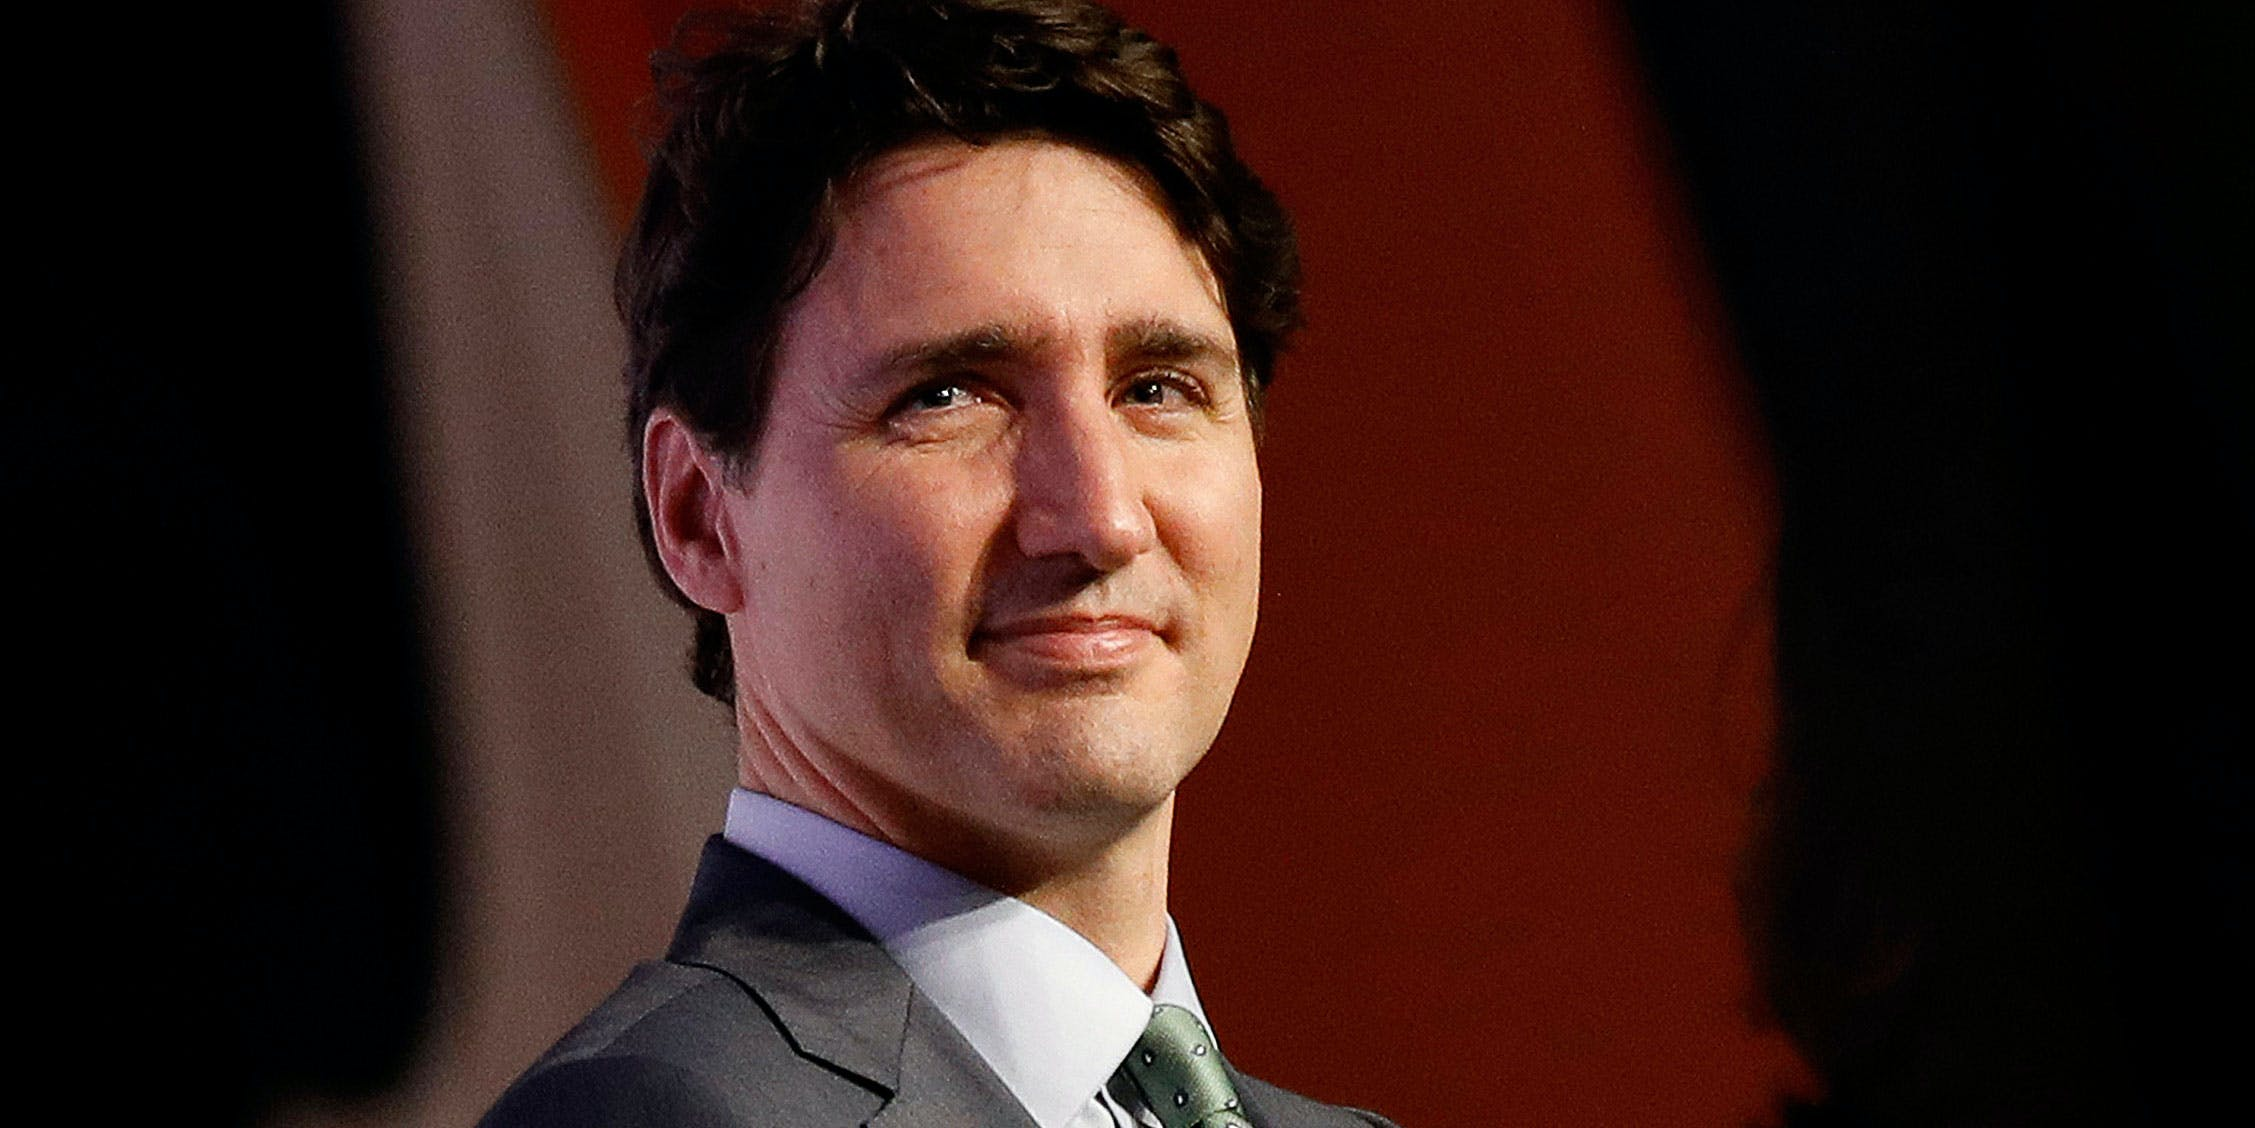 Justin Trudeau speaks about protecting home growing in the cannabis act